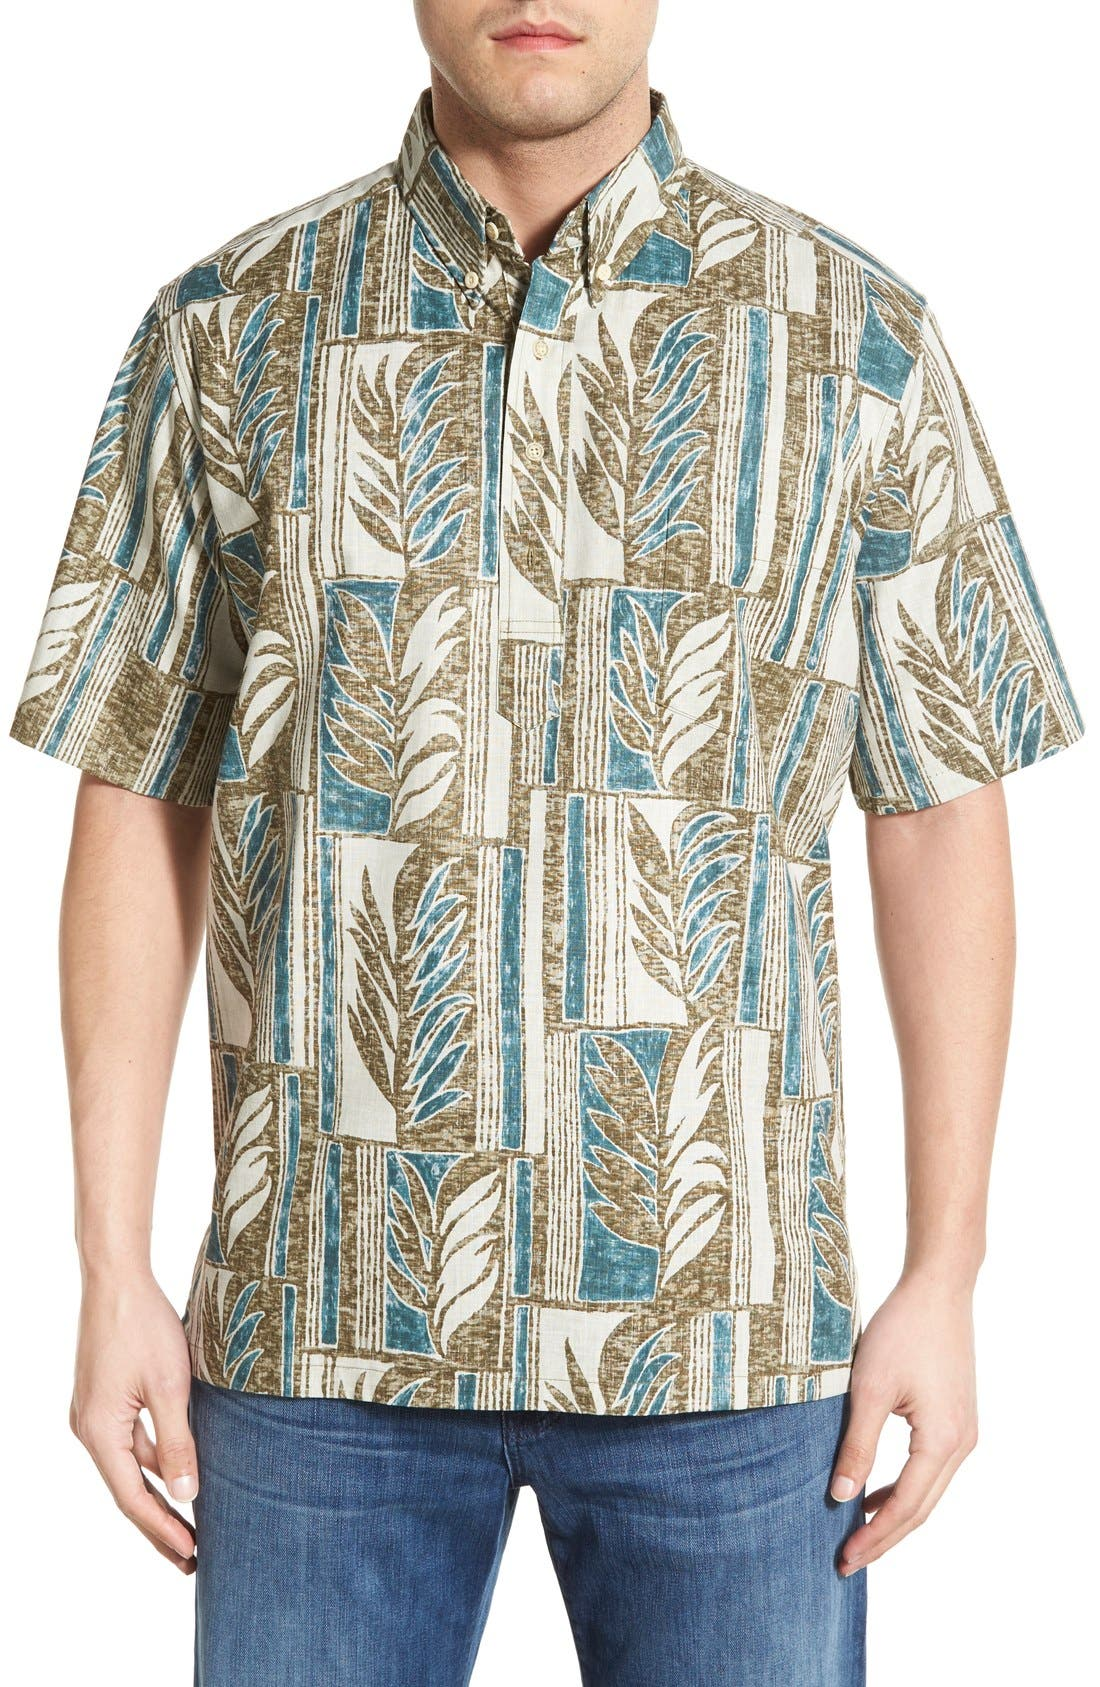 REYN SPOONER,                             'Lau Palaka' Classic Fit Wrinkle Free Pullover Shirt,                             Main thumbnail 1, color,                             321